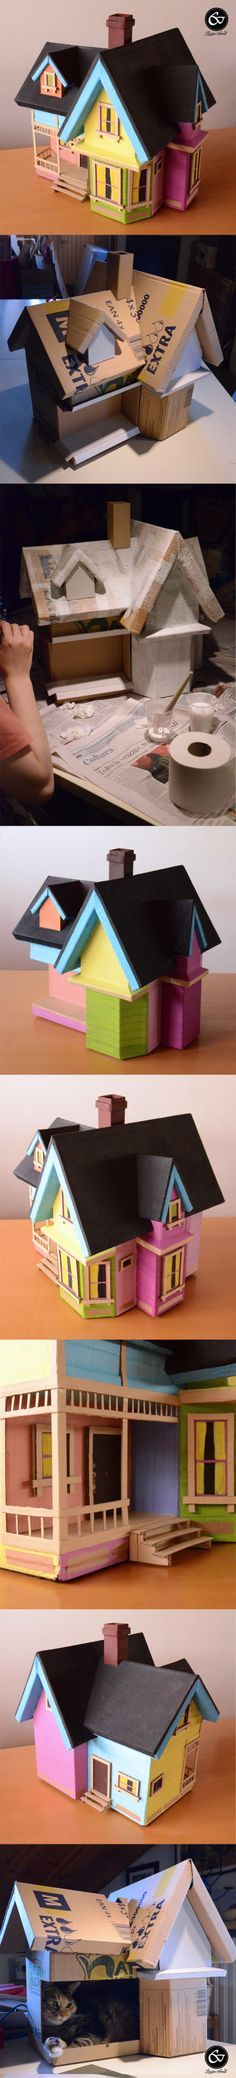 Up House from recycled cardboard boxes, even my cat wants it for itself! Just create the structure with cardboard, add some glue and toilet paper, add the colors, add all the details and voilà. a fantastic Up house! Fun Crafts, Diy And Crafts, Crafts For Kids, Arts And Crafts, Cardboard Crafts, Paper Crafts, Cardboard Boxes, Cardboard Recycling, Cardboard Dollhouse